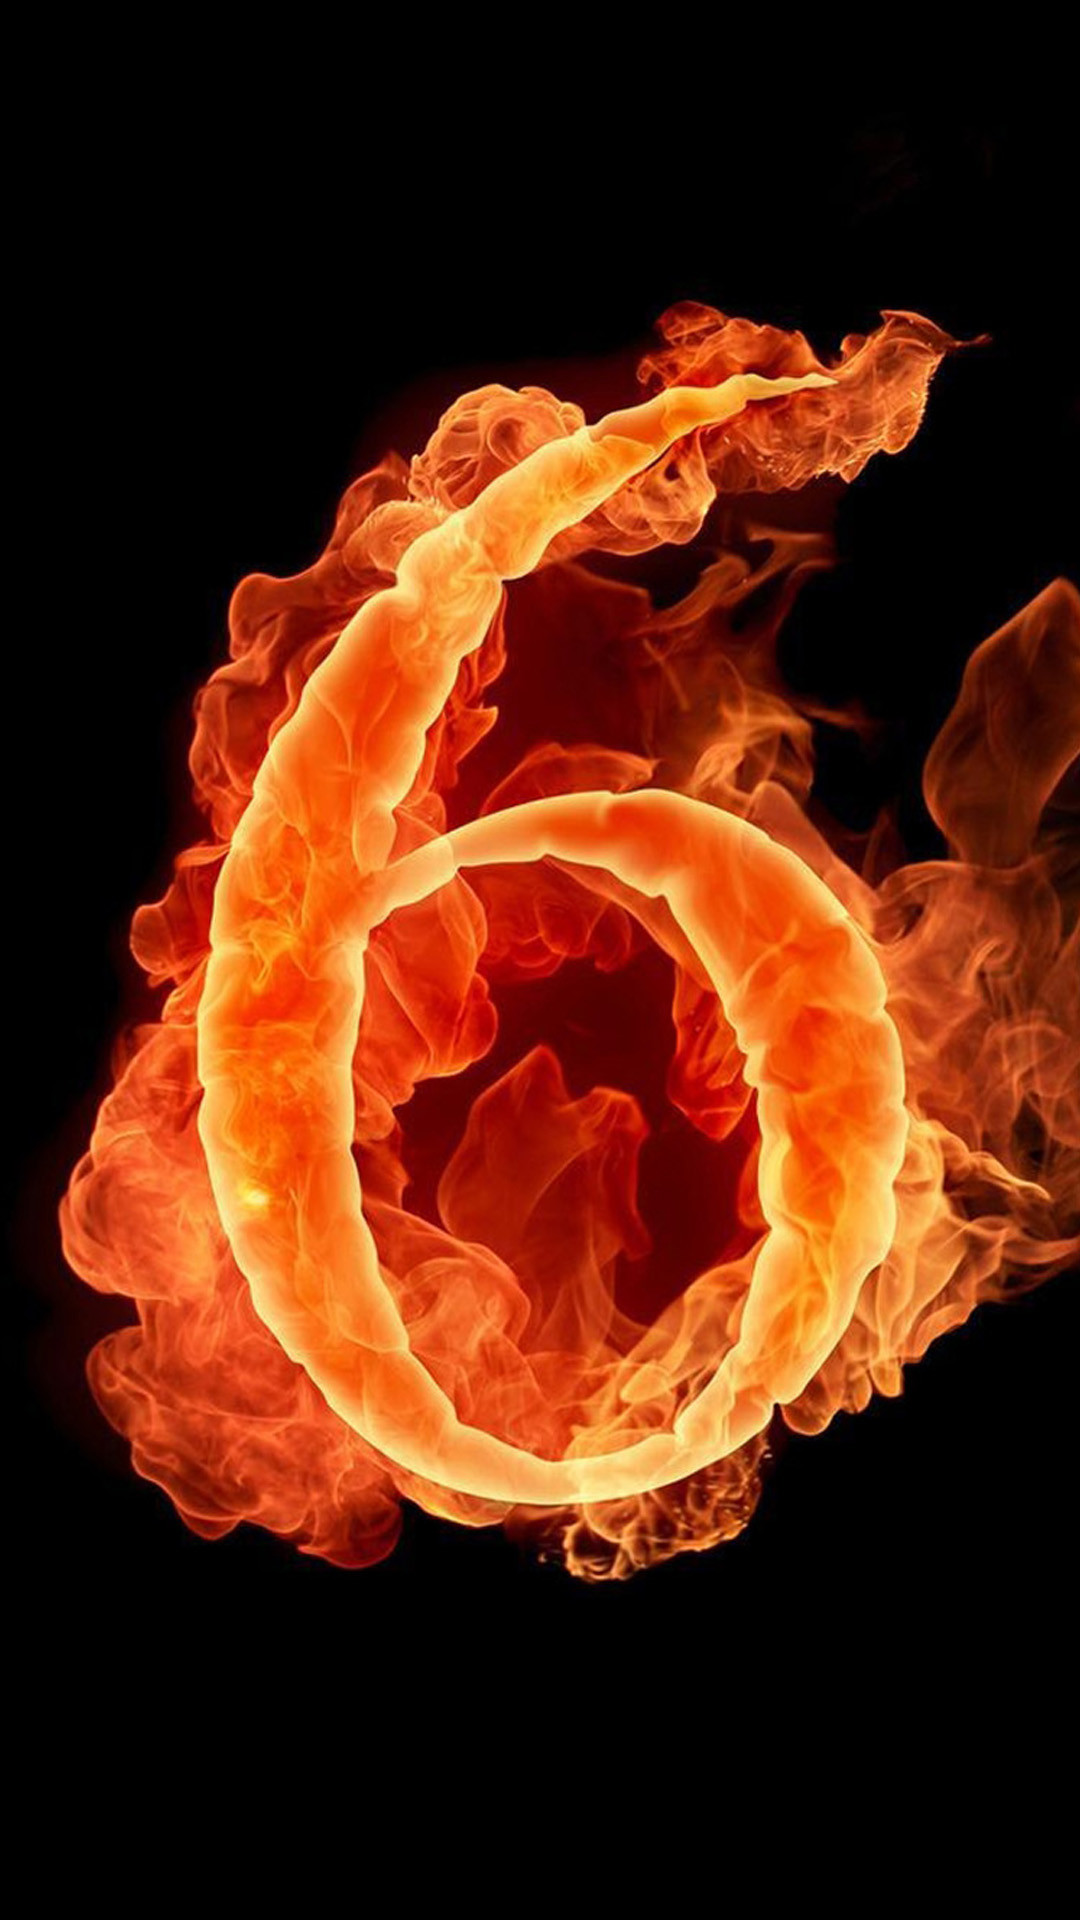 Abstract Fire Wallpaper 69 Images